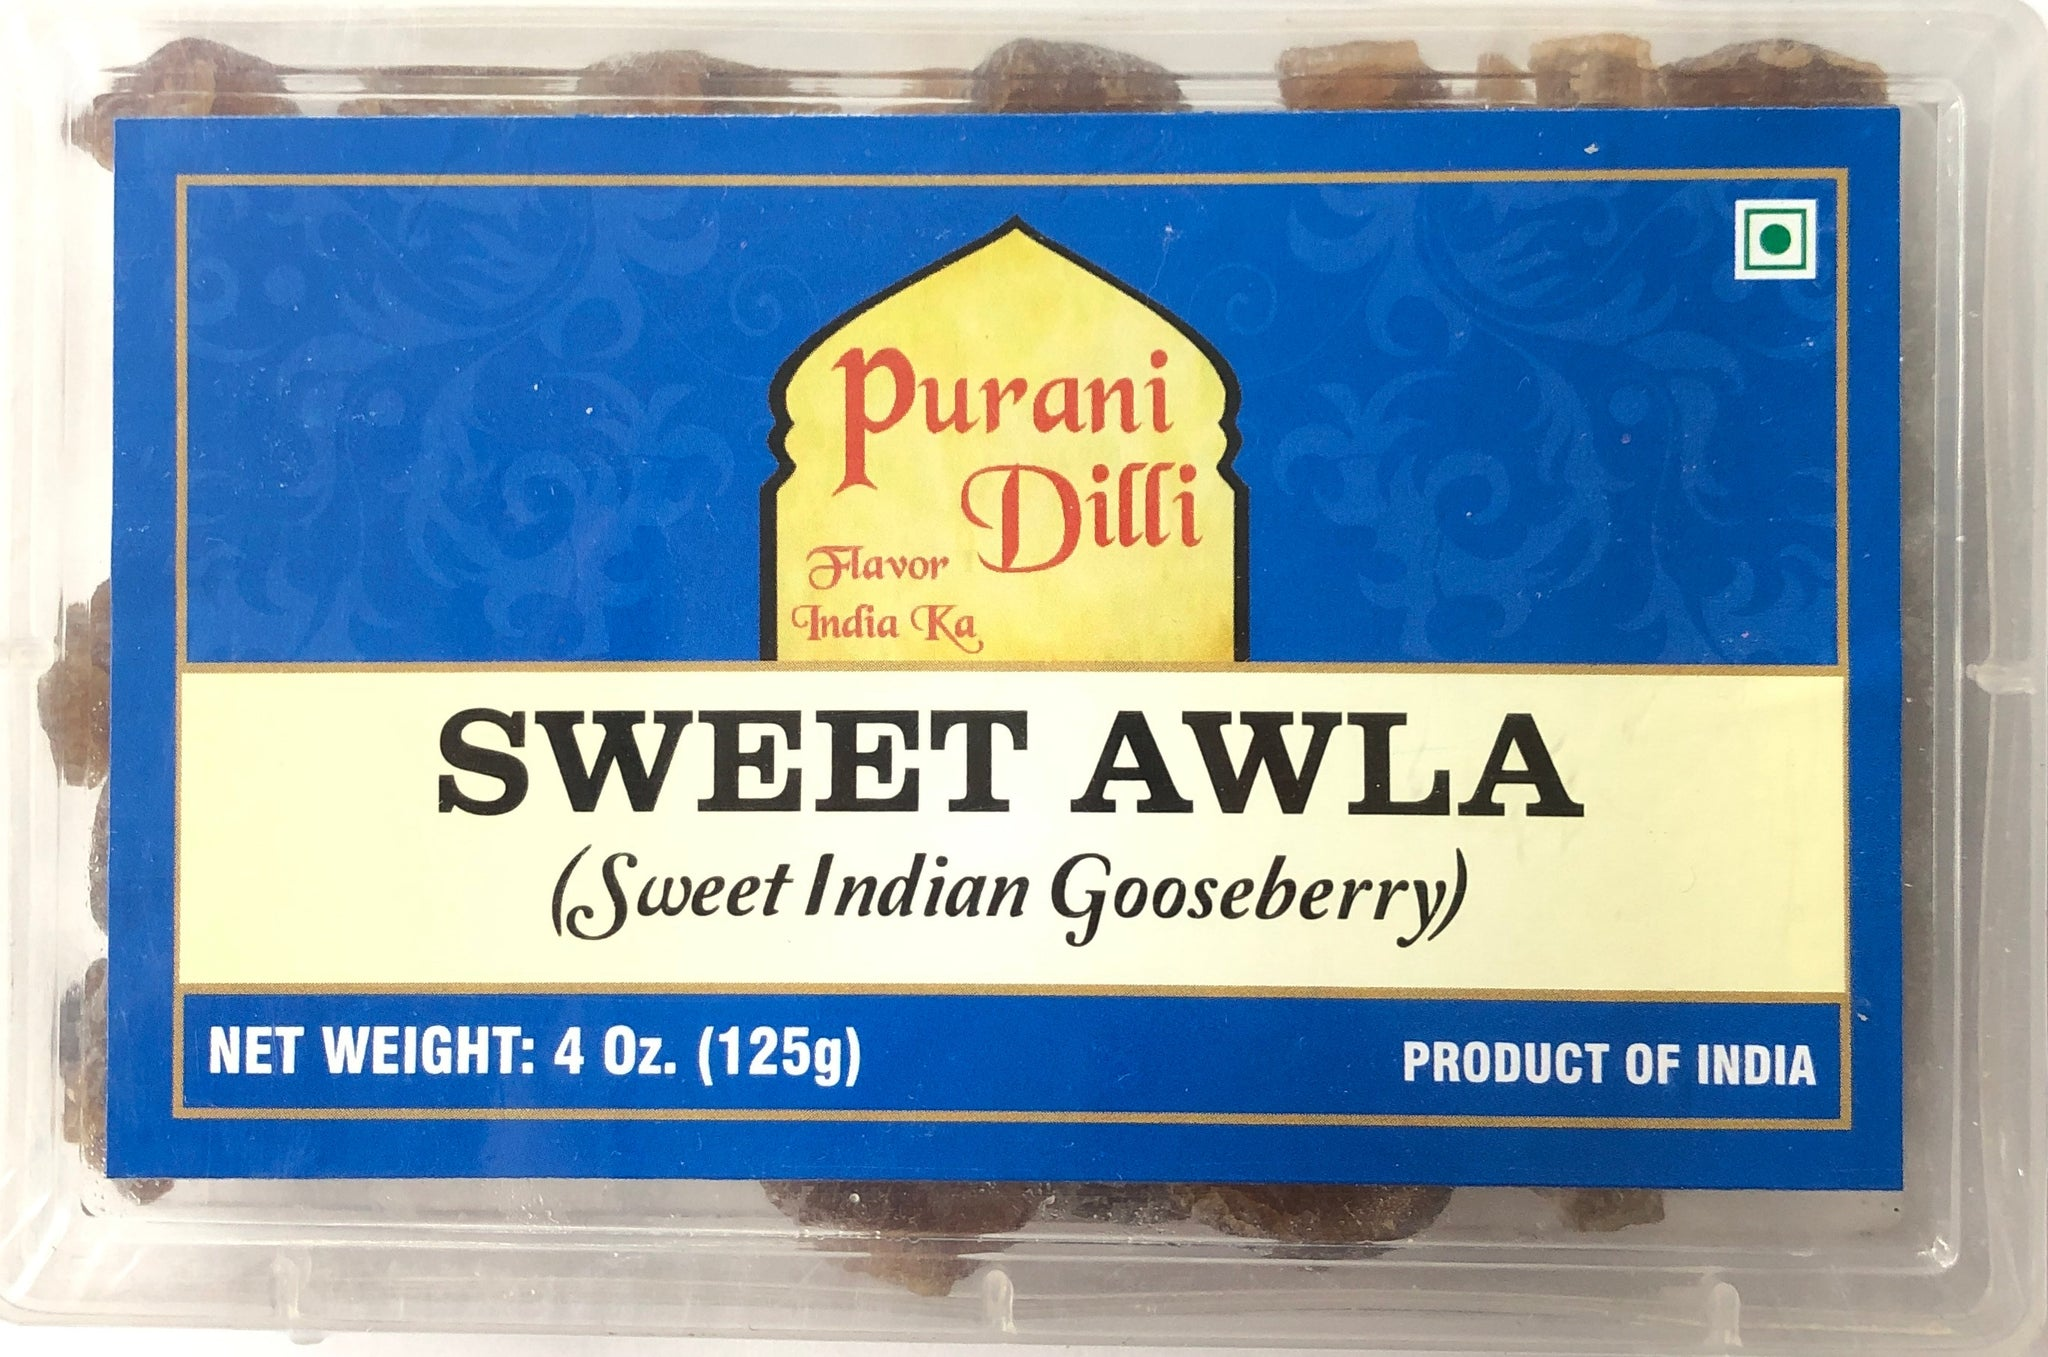 Sweet Amla (Sweet Indian Gooseberry)